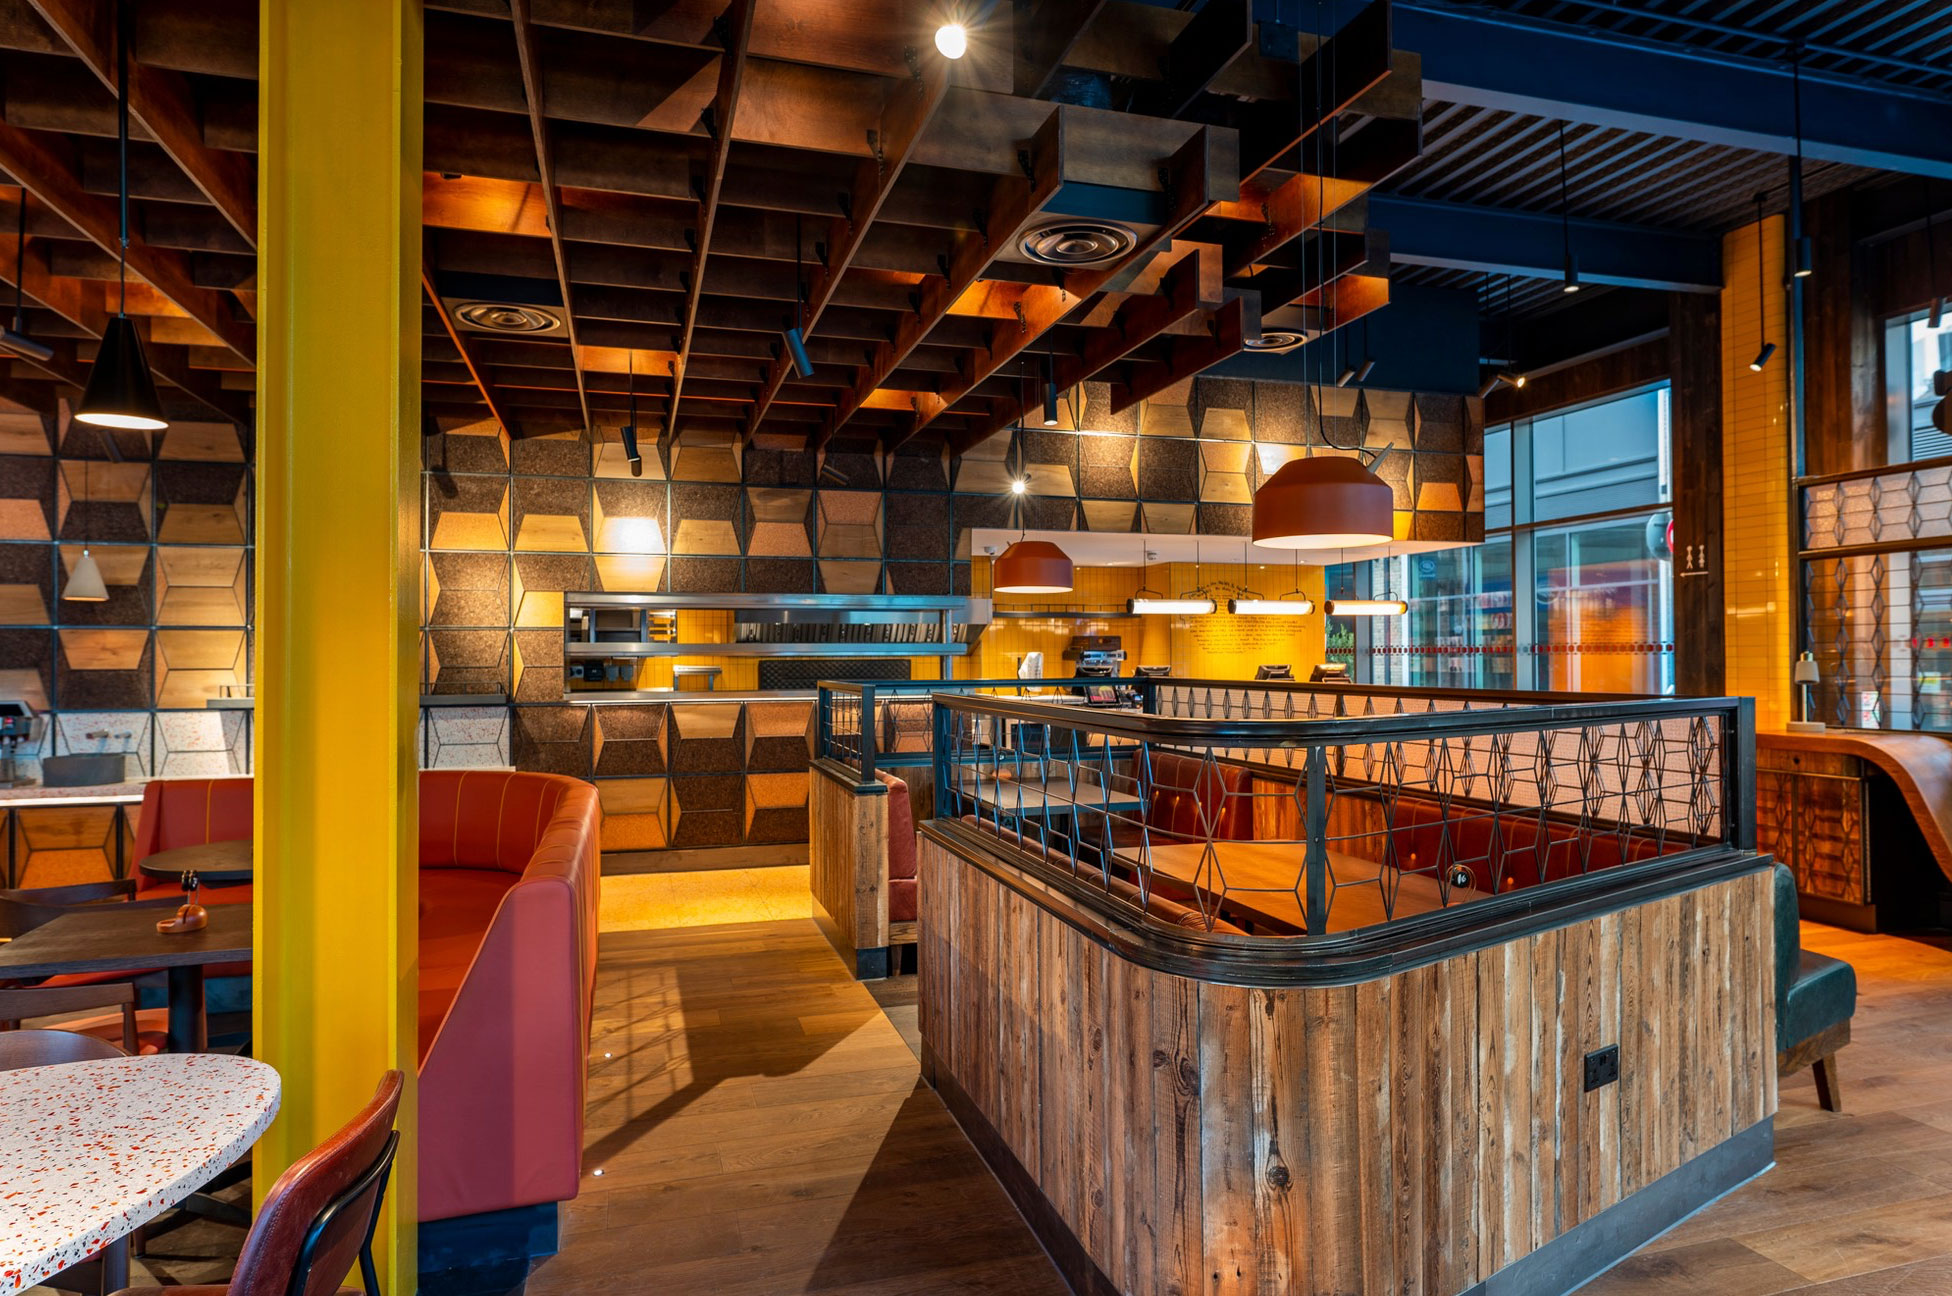 Rustic wood curved around seating area in Nando's with bright yellow RSJ